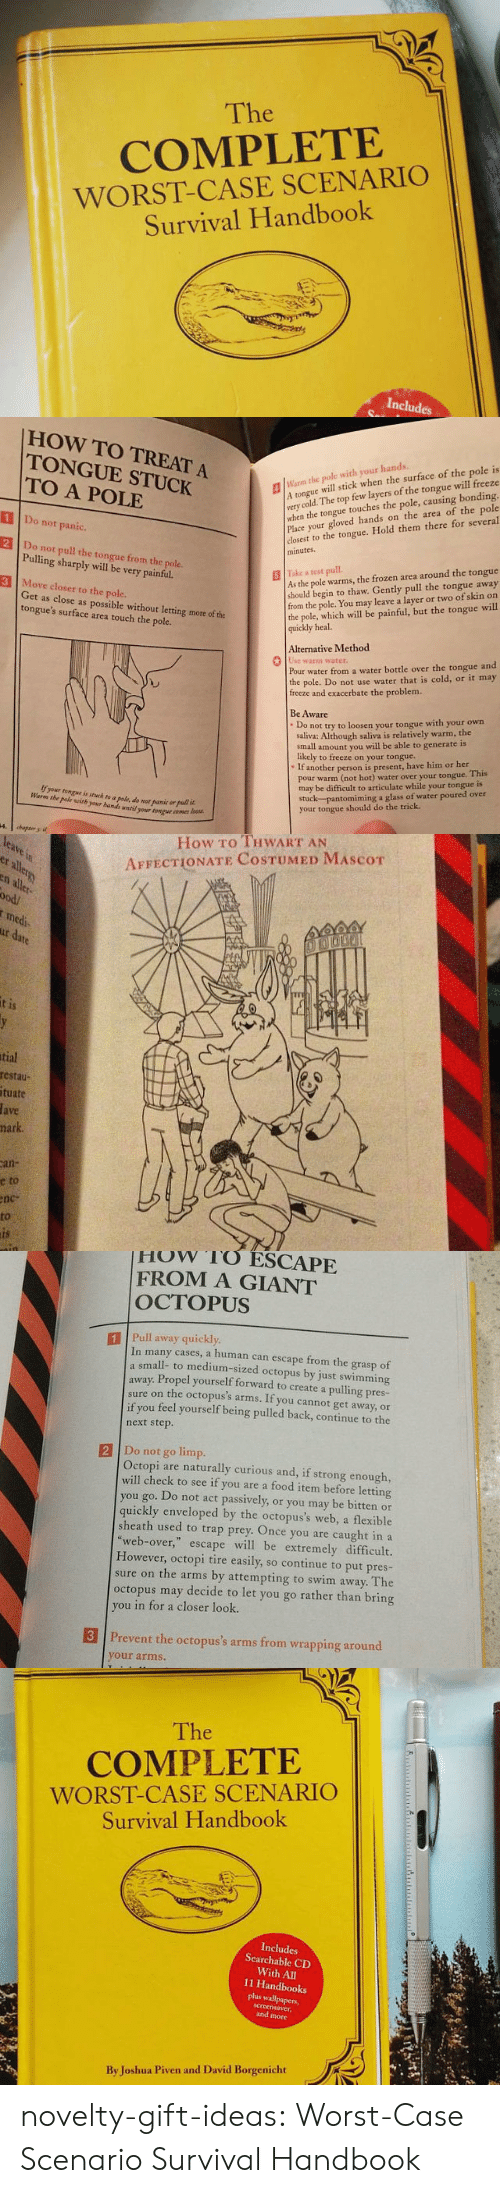 Wih: The  COMPLETE  WORST-CASE SCENARIO  Survival Handbook  Includes   HOW TO TREAT A  TONGUE STUCK  TO A POLE  lWarm the pole with your hands.  Atongue will stick when the surface of the pole is  very  when the tongue touches the pole, causing bonding.  Place your gloved hands on the area of the pole  closest to the tongue. Hold them there for several  minutes  cold. The top few layers of the tongue will freeze  1 Do not panic.  2 Do not pull the tongue from the pole  3 Move closer to the pole.  Pulling sharply will be very painful.  As the pole warms, the frozen area around the tongue  should begin to thaw. Gently pull the tongue away  from the pole. You may leave a layer or two of skin on  the pole, which will be painful, but the tongue will  quickly heal.  | İlke z test pull.  Get as close as possible without letting more of the  tongue's surface area touch the pole.  Alternative Method  0  se warm water  Pour water from a water bottle over the tongue and  the pole. Do not use water that is cold, or it may  freeze and exacerbate the problem.  Be Aware  Do not try to loosen your tongue with your own  saliva: Although saliva is relatively warm, the  small amount you will be able to generate is  likely to freeze on your tongue..  If another person is present, have him or her  pour warm (not hot) water over your tongue. This  may be difficult to articulate while your tongue is  stuck-pantomiming a glass of water poured over  your tongue should do the trick  Warm the pole wih yr ui wti  your ton   How To THWART AN  AFFECTIONATE COSTUMED MAScoT  er  all  ood/  medi  1S  tial  restau  tuate  fave  hark  an-  e  to  nc-  to   How rO ESCAPE  FROM A GIANT  OCTOPUS  1 Pull away quickly  In many cases, a human can escape from the grasp of  small- to medium-sized octopus by just swimming  away. Propel yourself forward to create a pulling pres-  sure on the octopus's arms. If you cannot get away, or  if you feel yourself being pulled back, continue to the  next step.  2 Do no